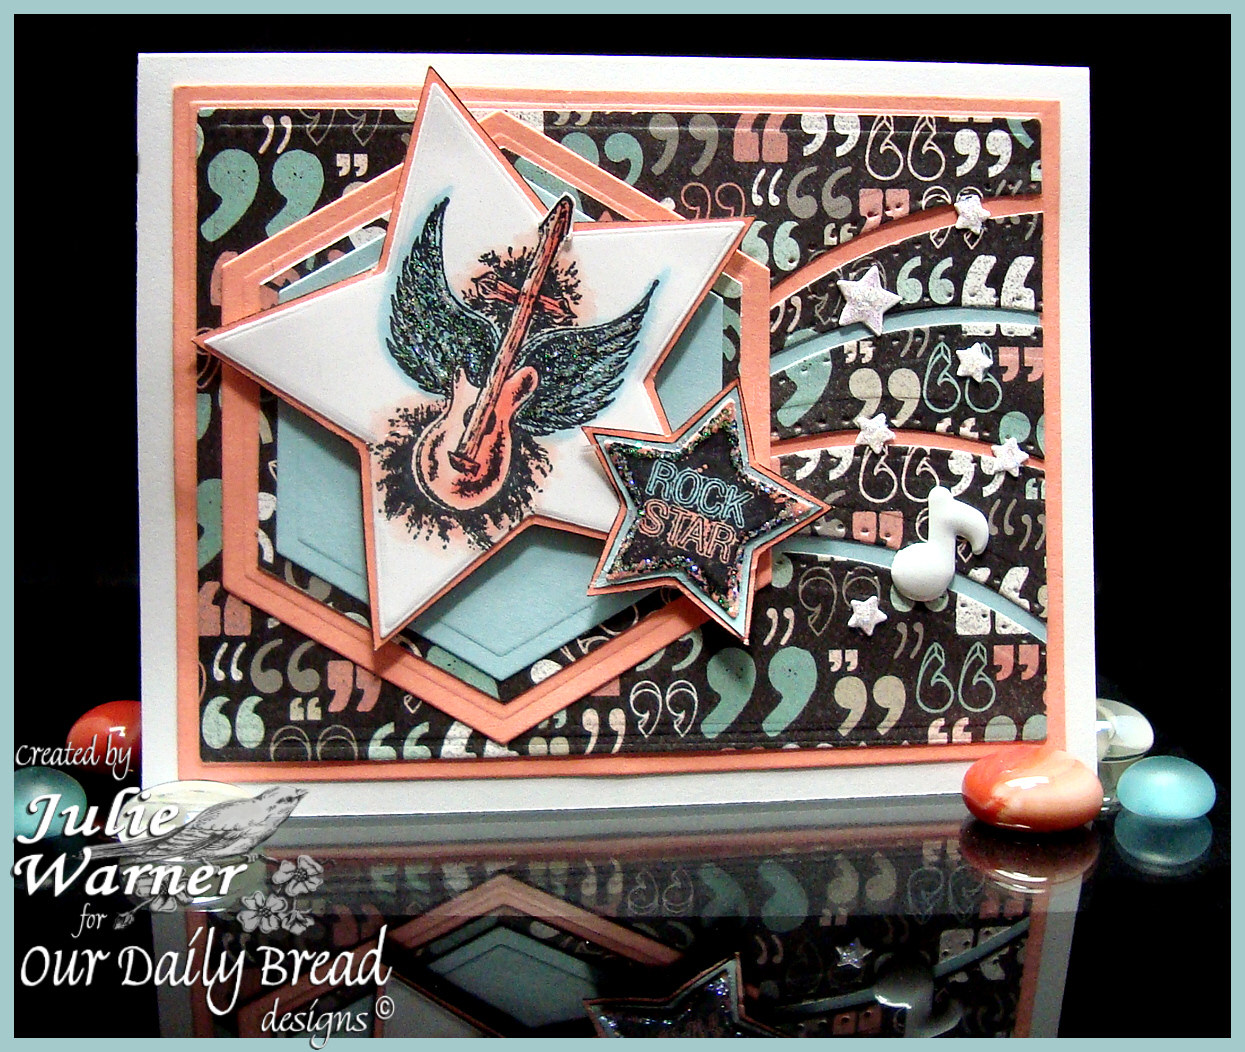 Stamps - Our Daily Bread Designs Rock Star, ODBD Custom Sparkling Stars Dies